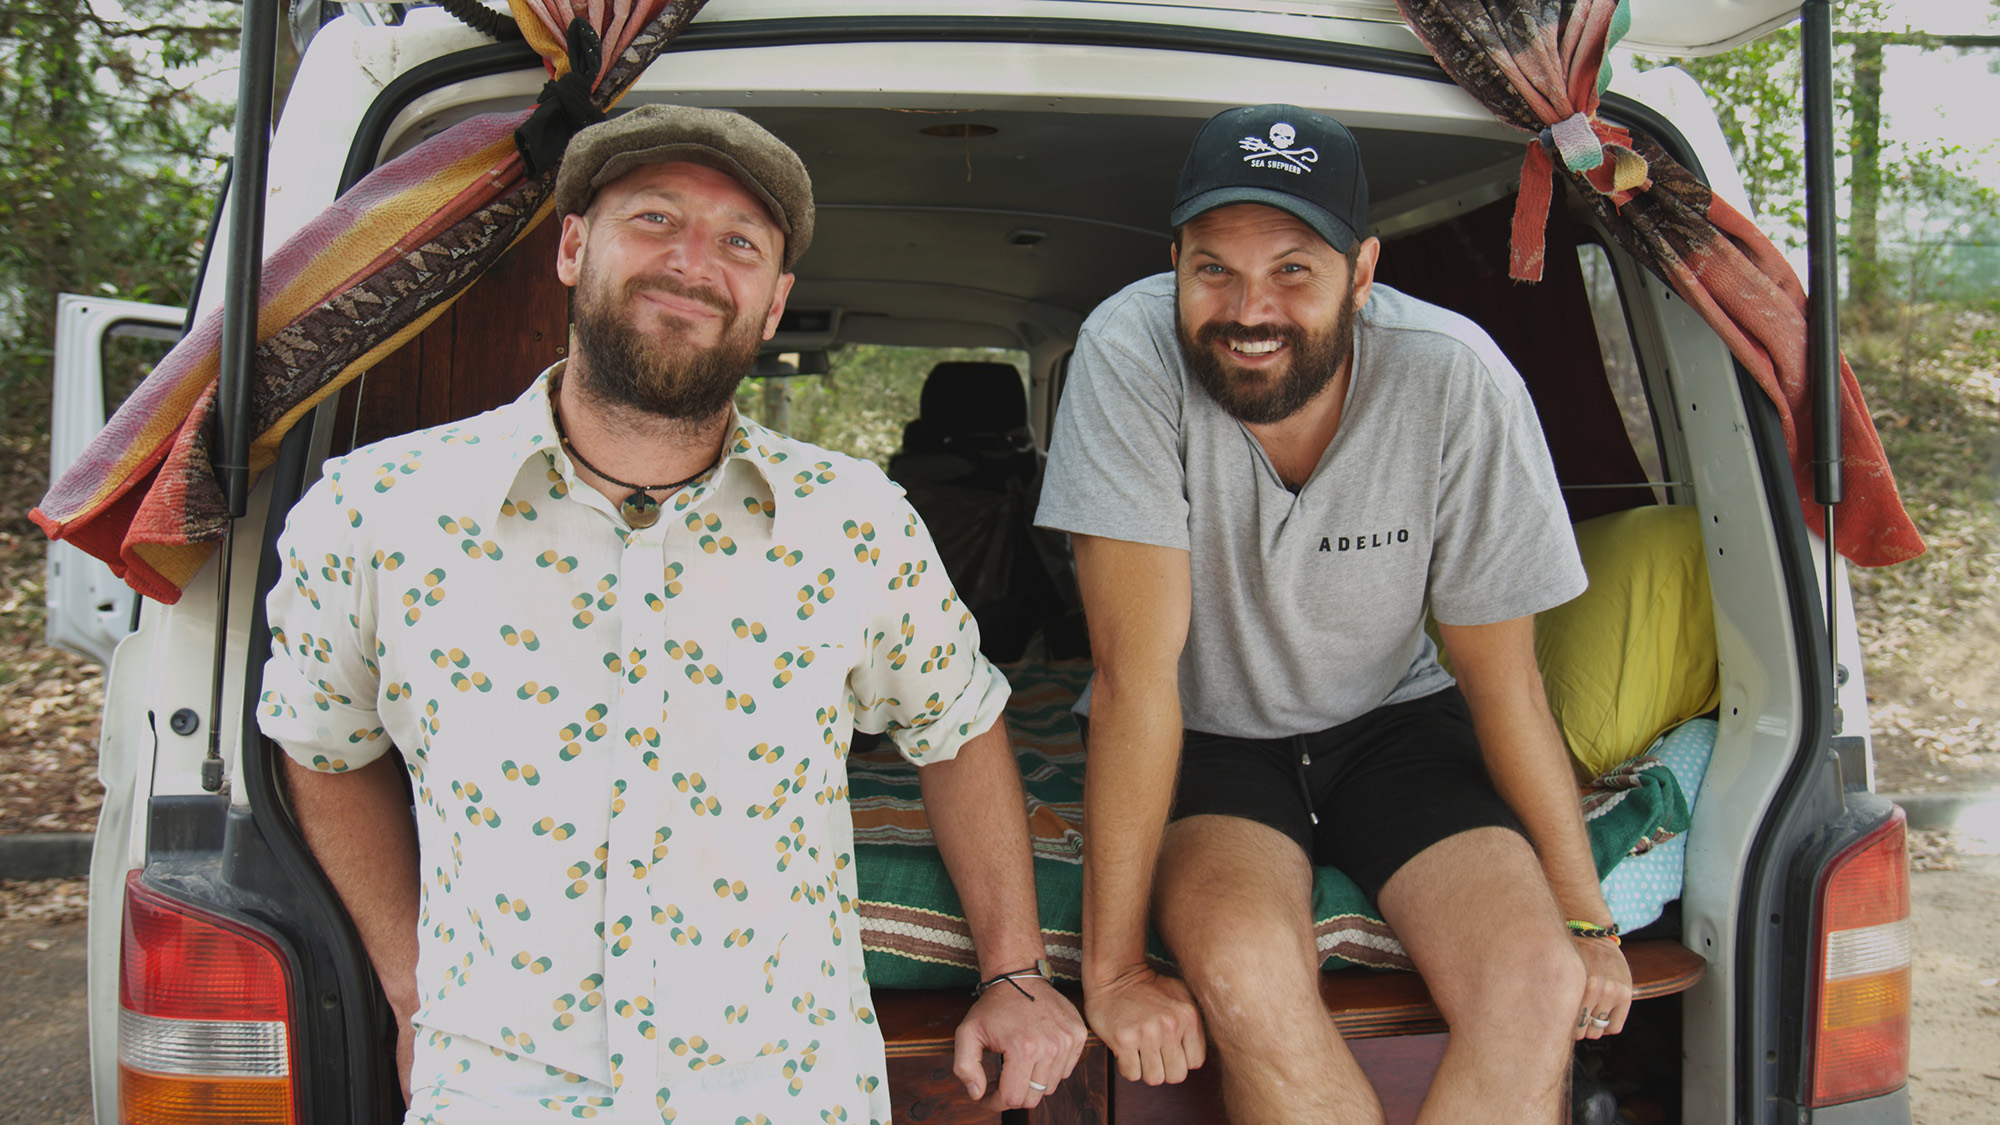 Jared and Jonny, the founders of  @vanlifediaries  | From DAY 2 of production on 'The Meaning of Vanlife' in NSW, Australia